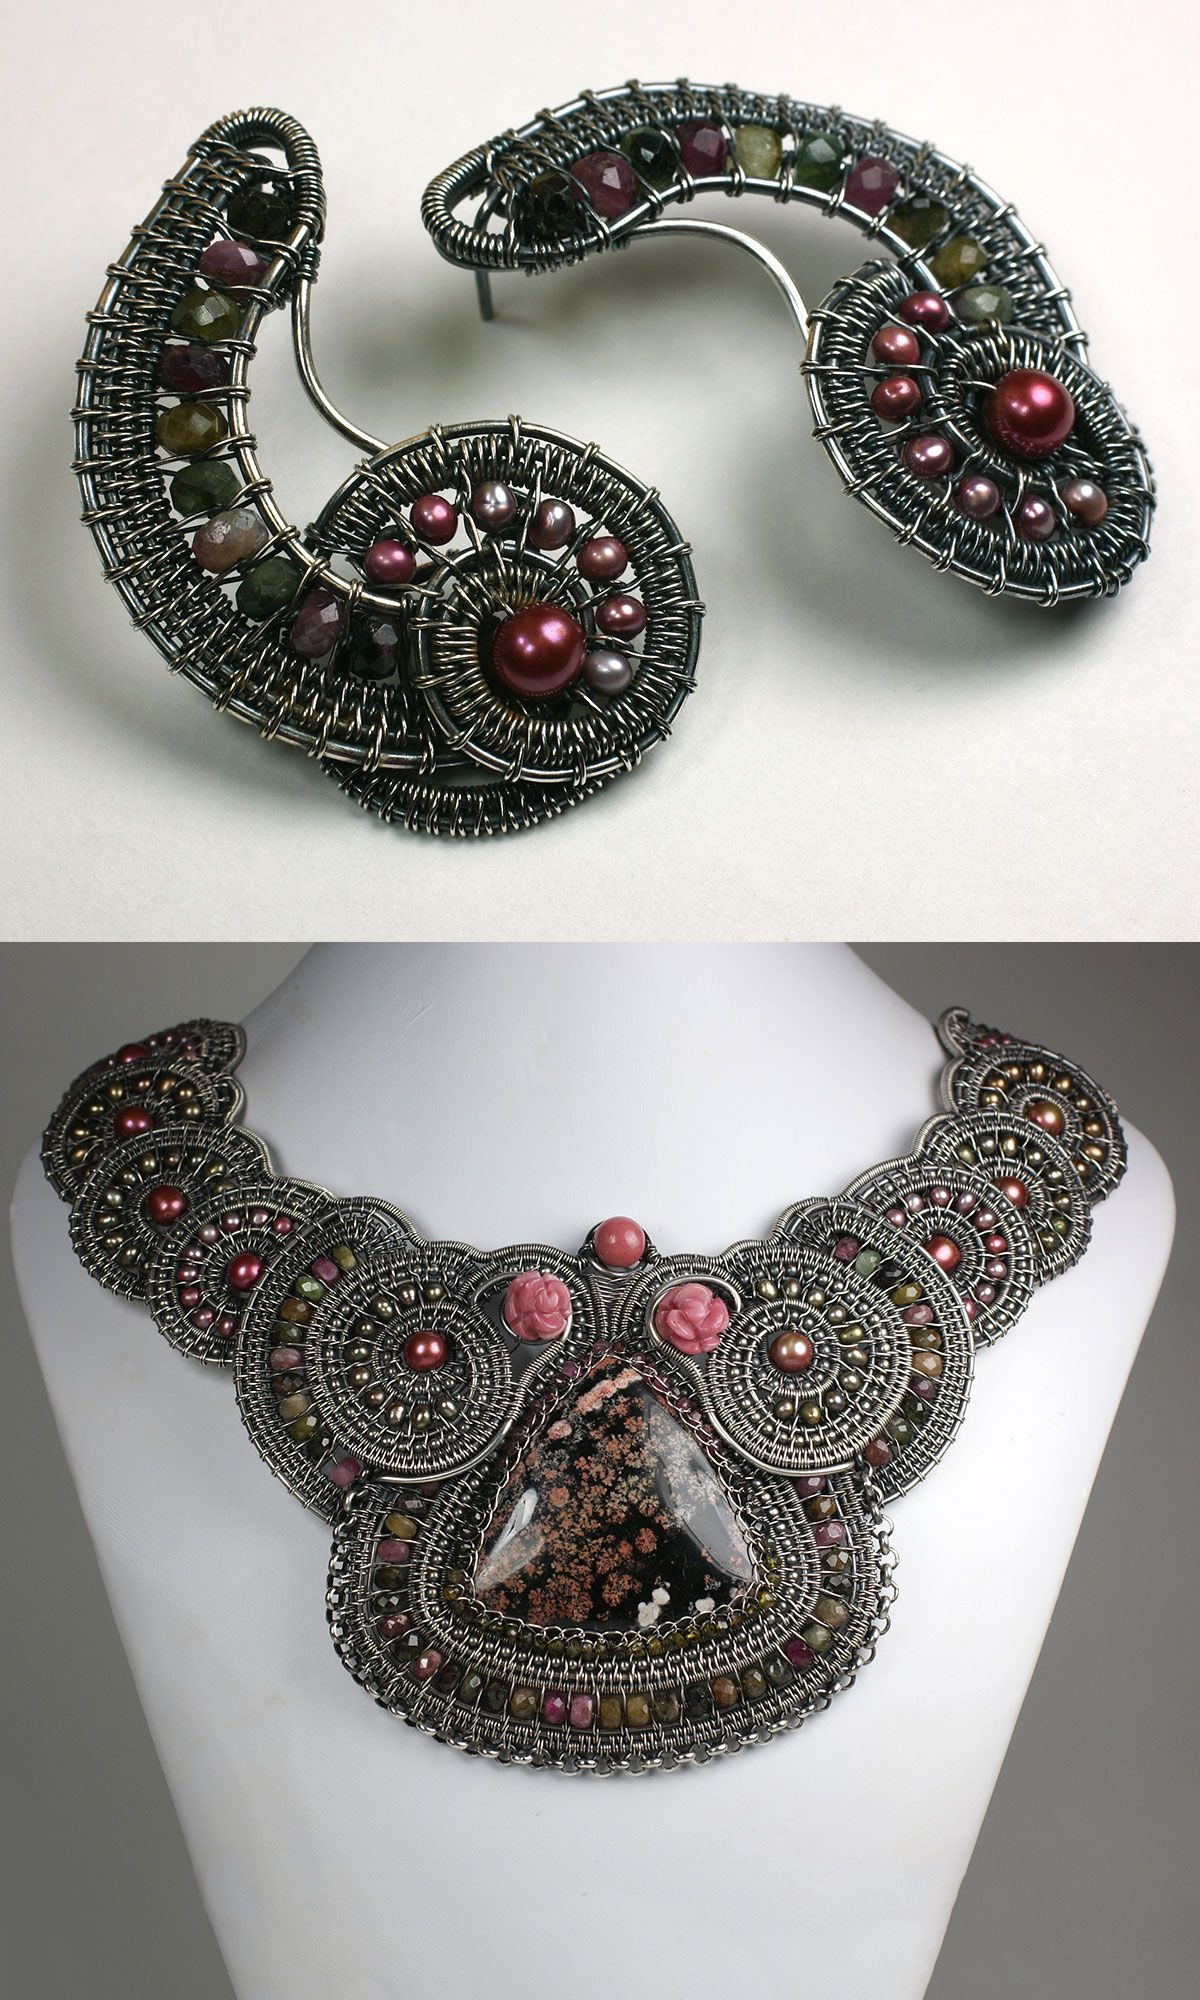 Jewelry Design - Bib-Style Necklace and Earring Set with Wirework ...